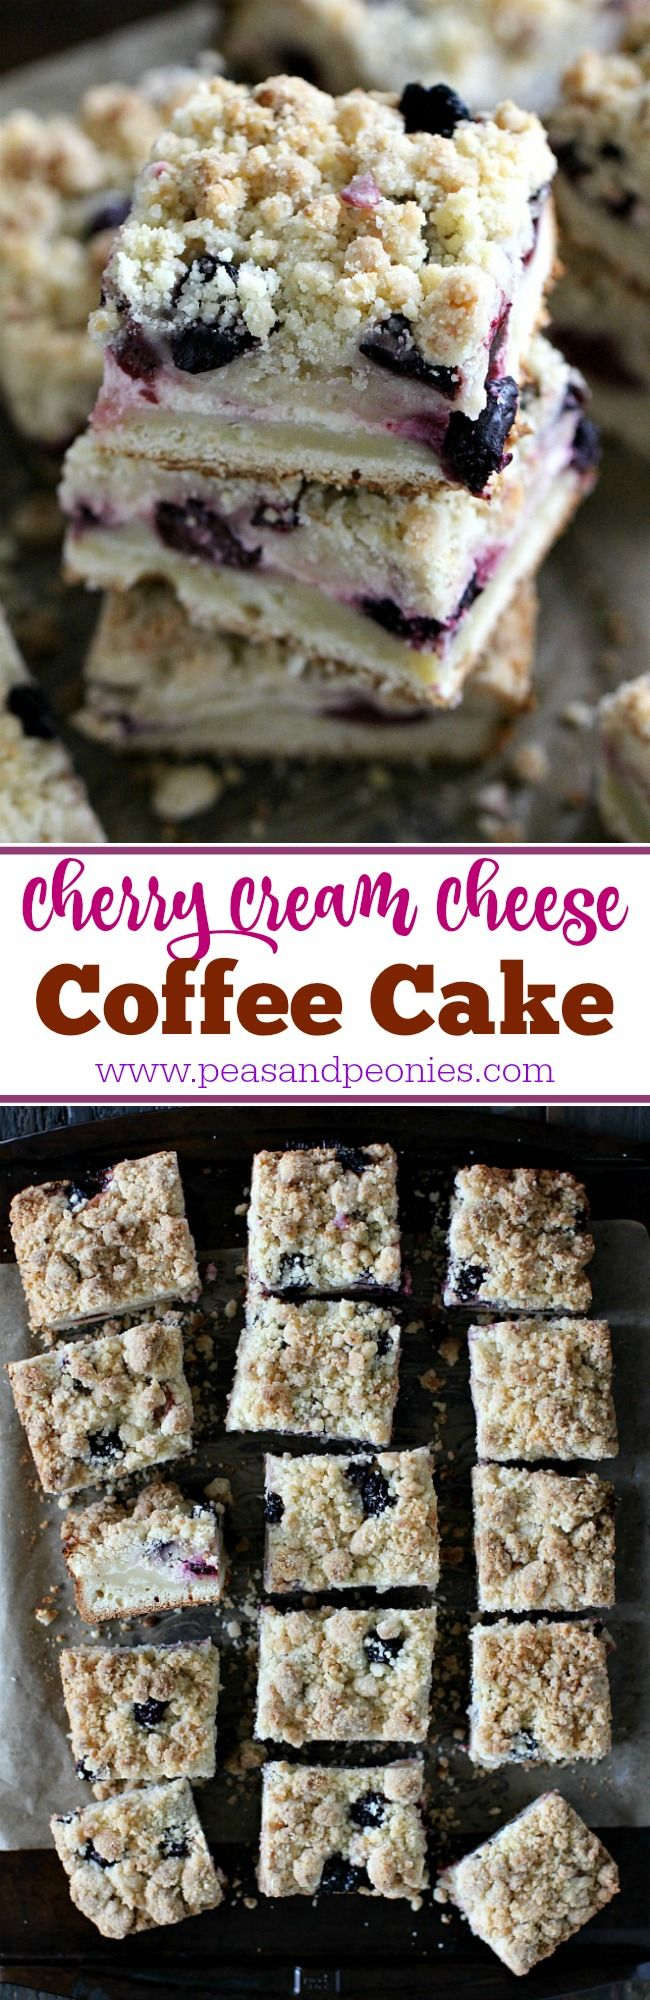 This Cherry Cream Cheese Coffee Cake Is Made With A Cake Layer